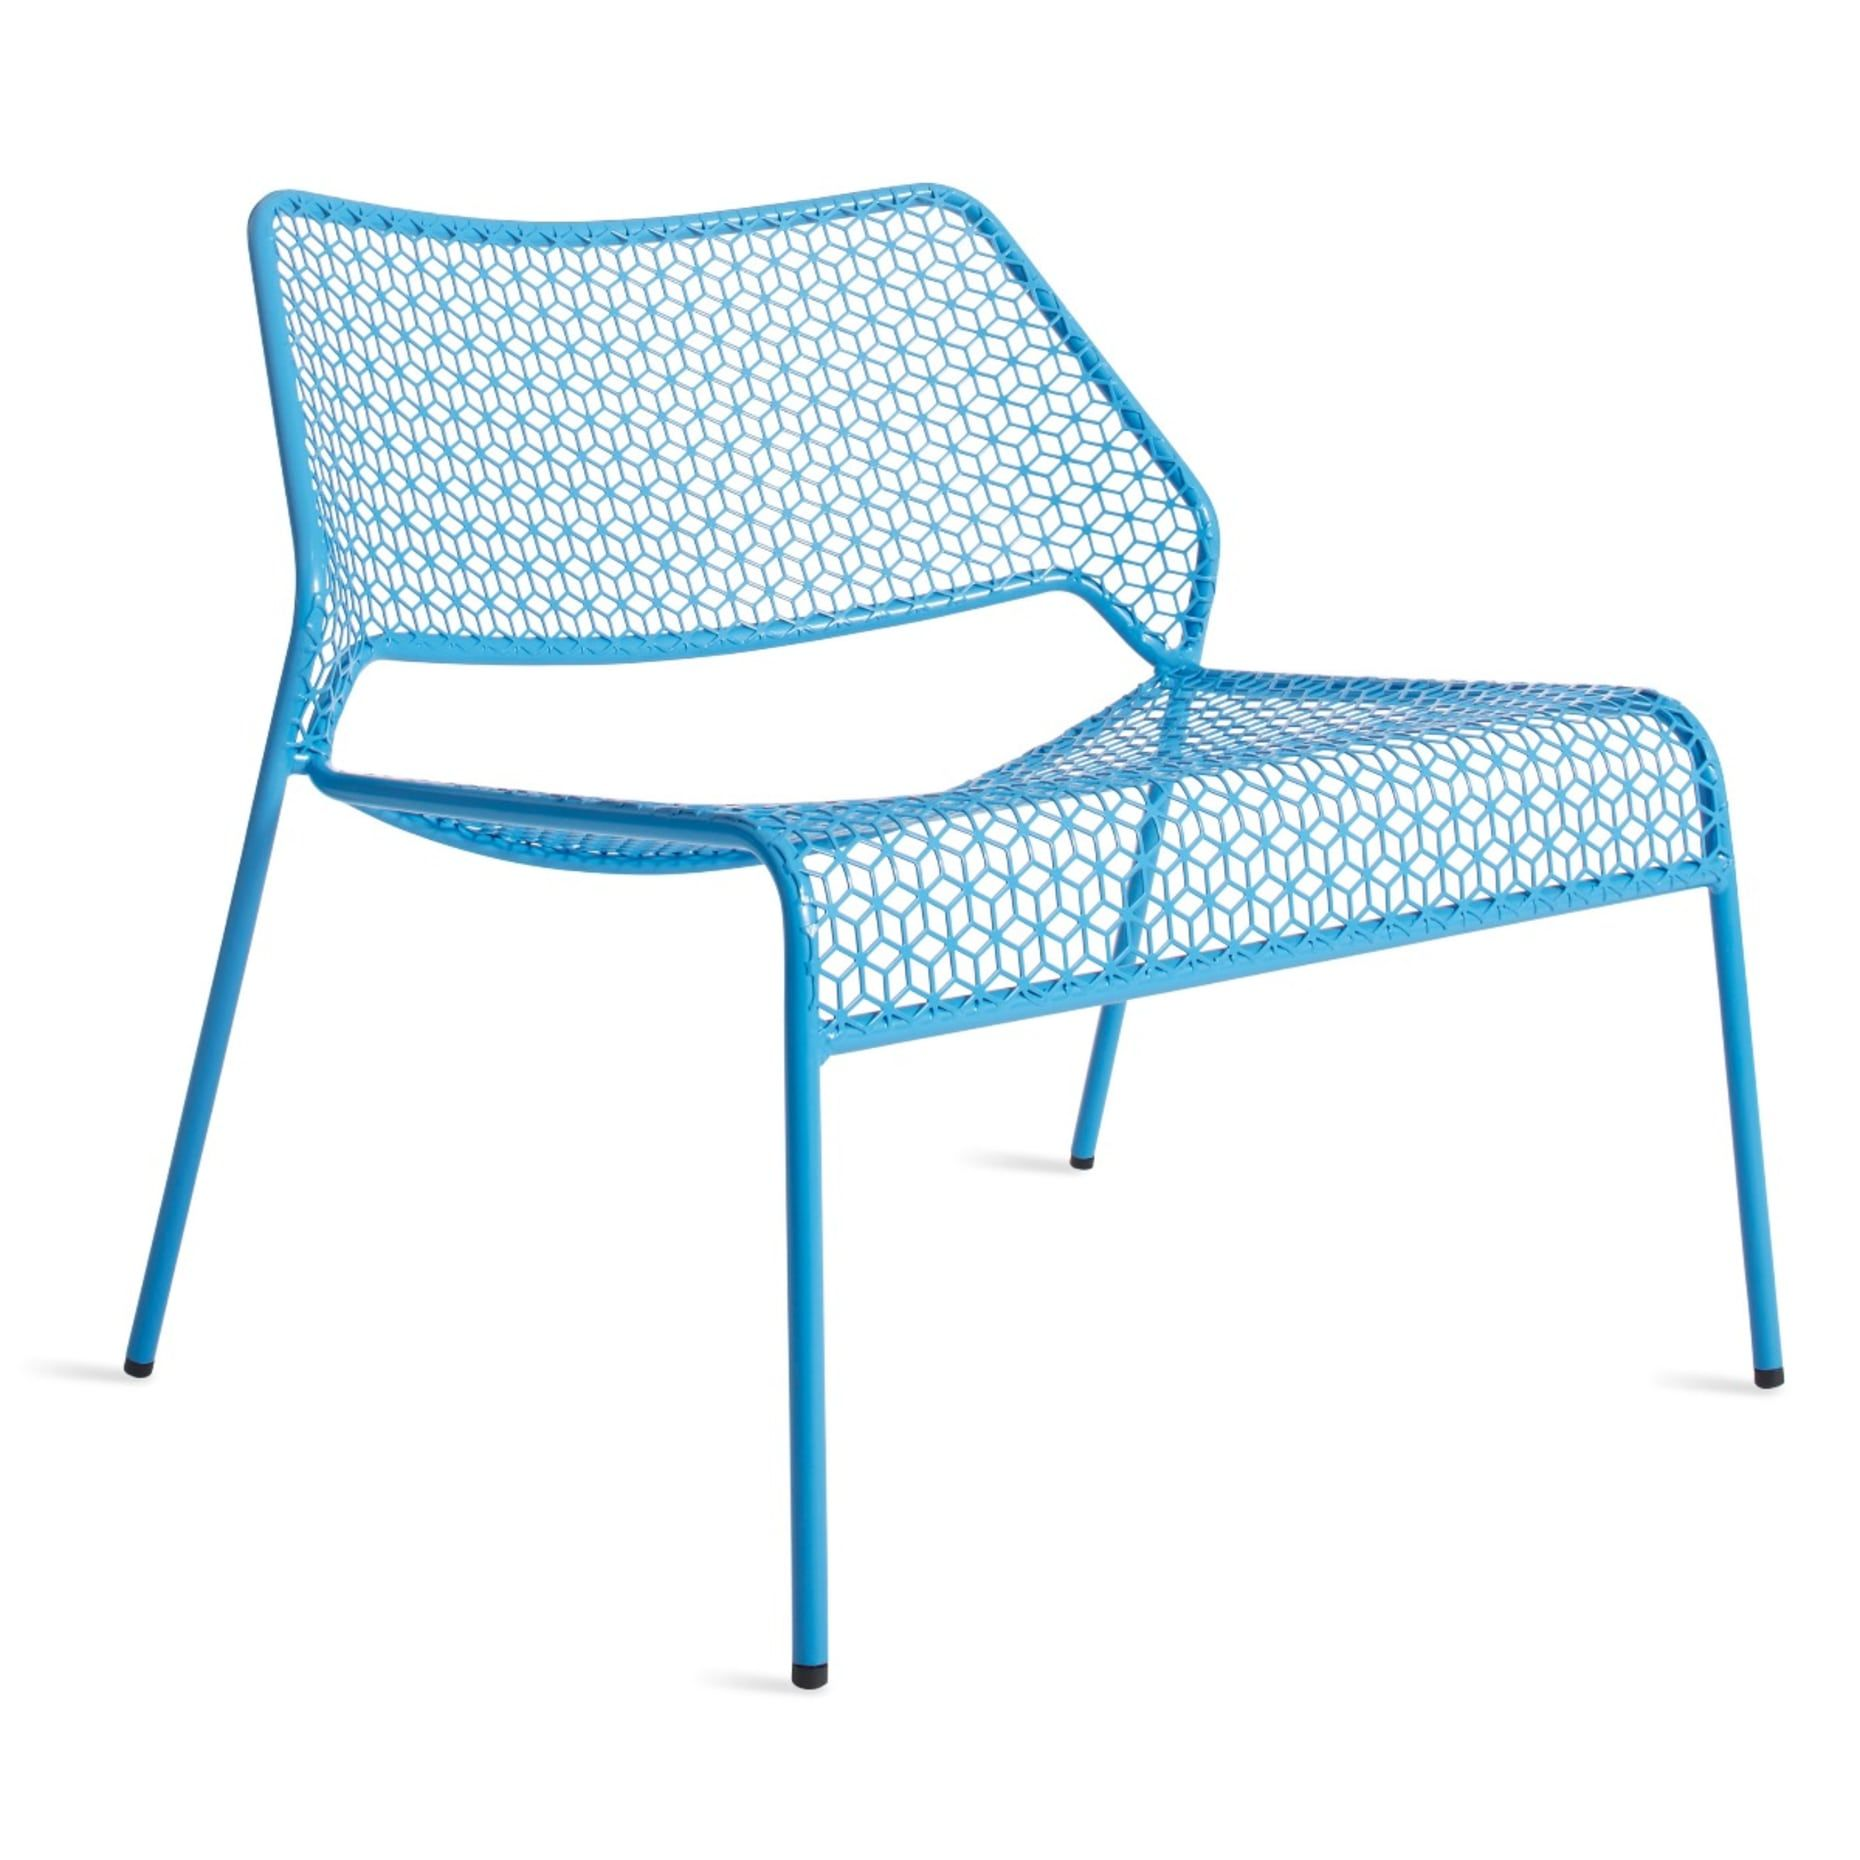 Hot Mesh Lounge Chair Lounge Chair Outdoor Metal Lounge Chairs Outdoor Chairs